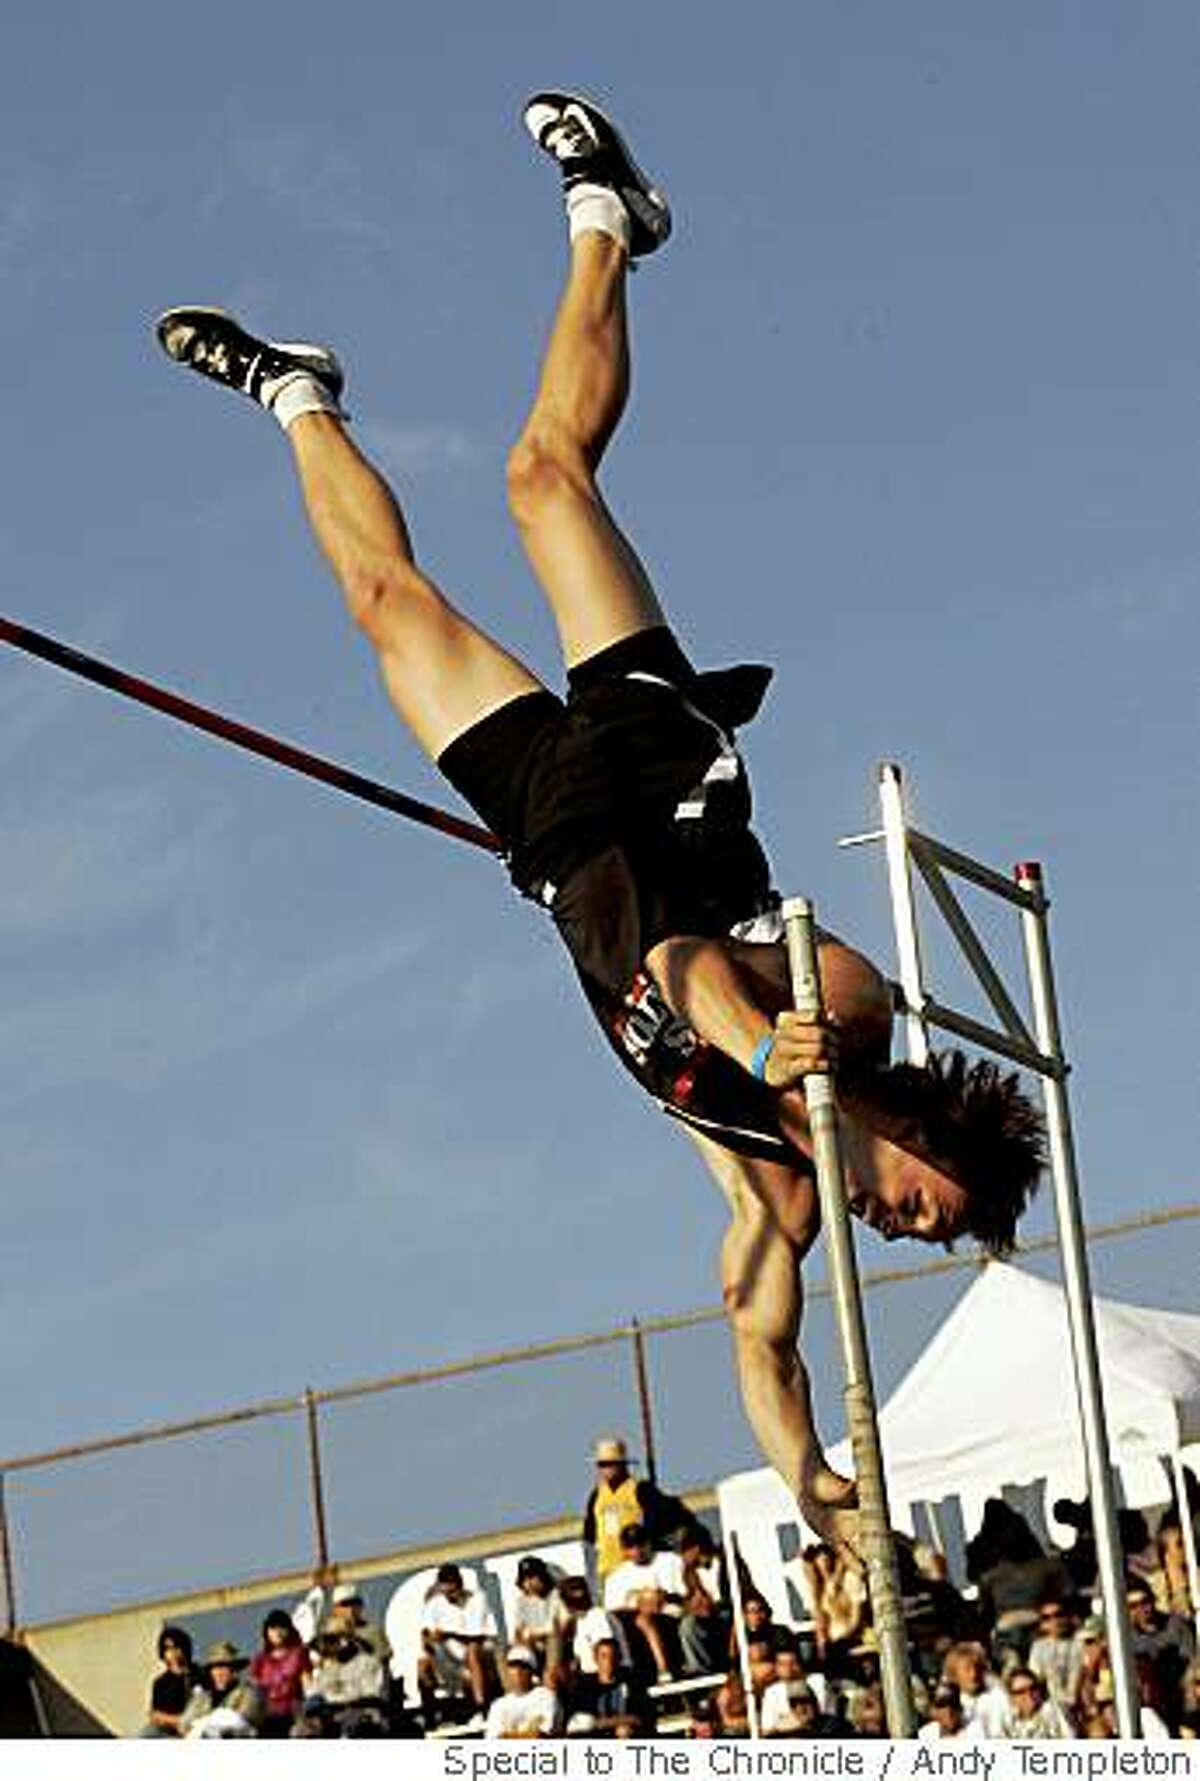 Nico Weiler of Los Gatos came in 1st with this jump of 17 feet 3 inches in the Boys Pole Vault at the CIF Track and Field Championships Saturday in Norwalk.